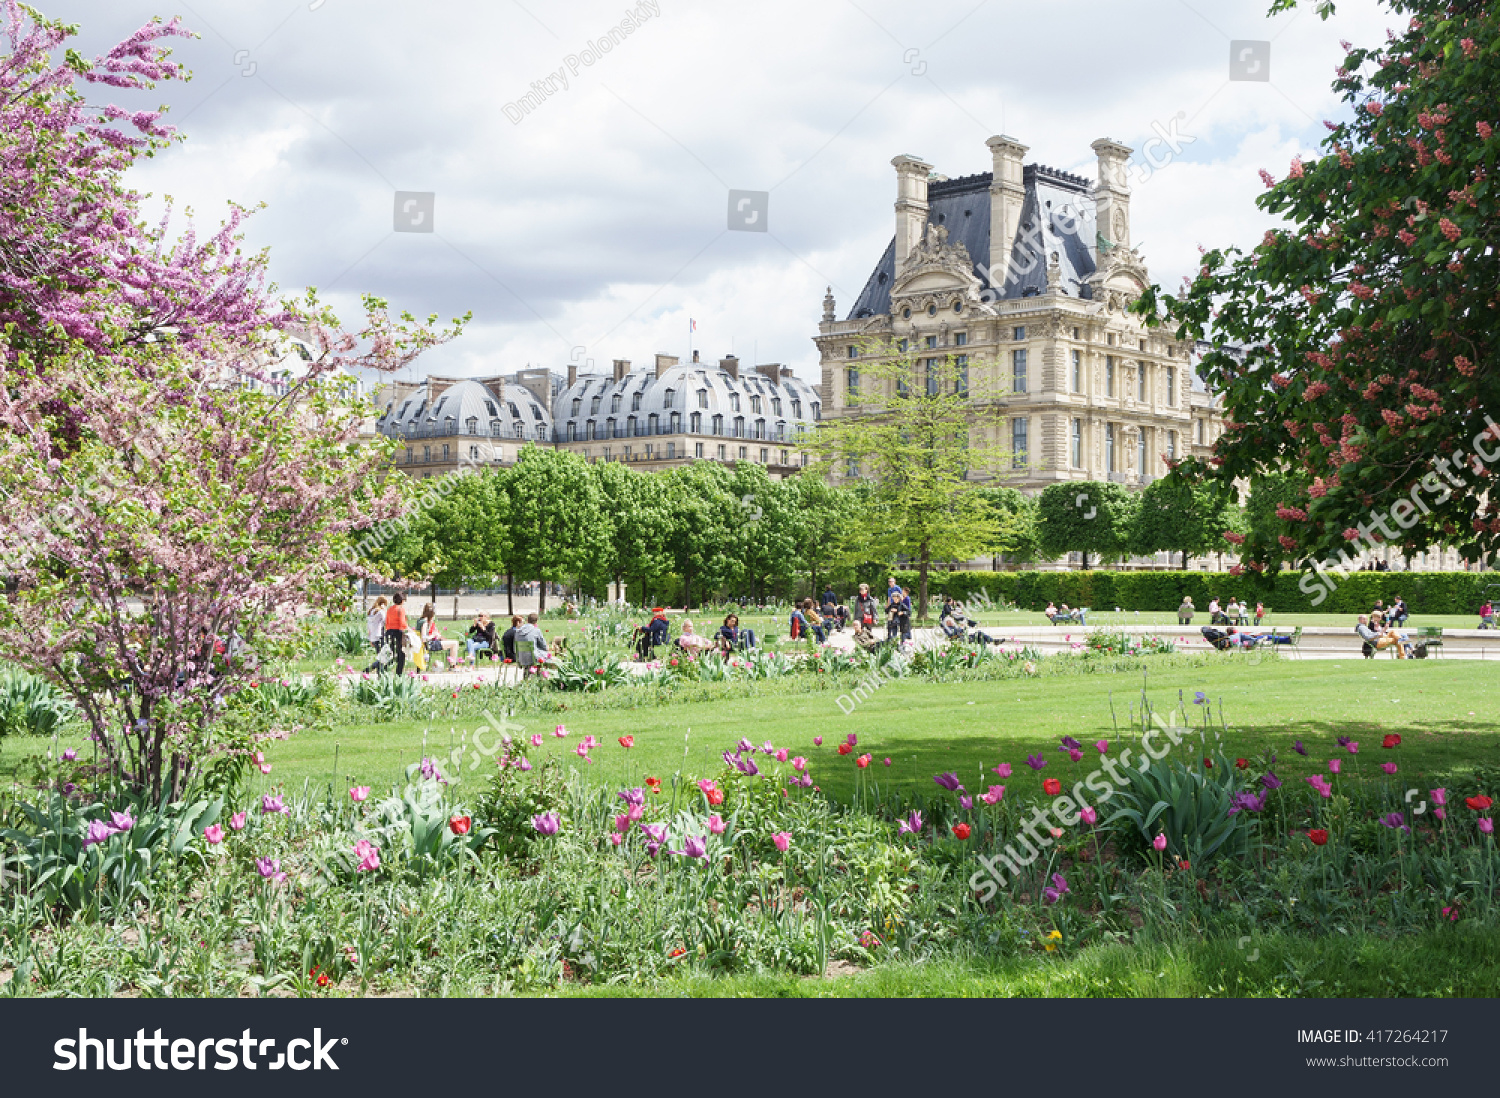 cultural visit the louvre essay An outline is a guide organizing the main ideas of your essay there are many kinds of outlines, but the alphanumeric outline is the most common.